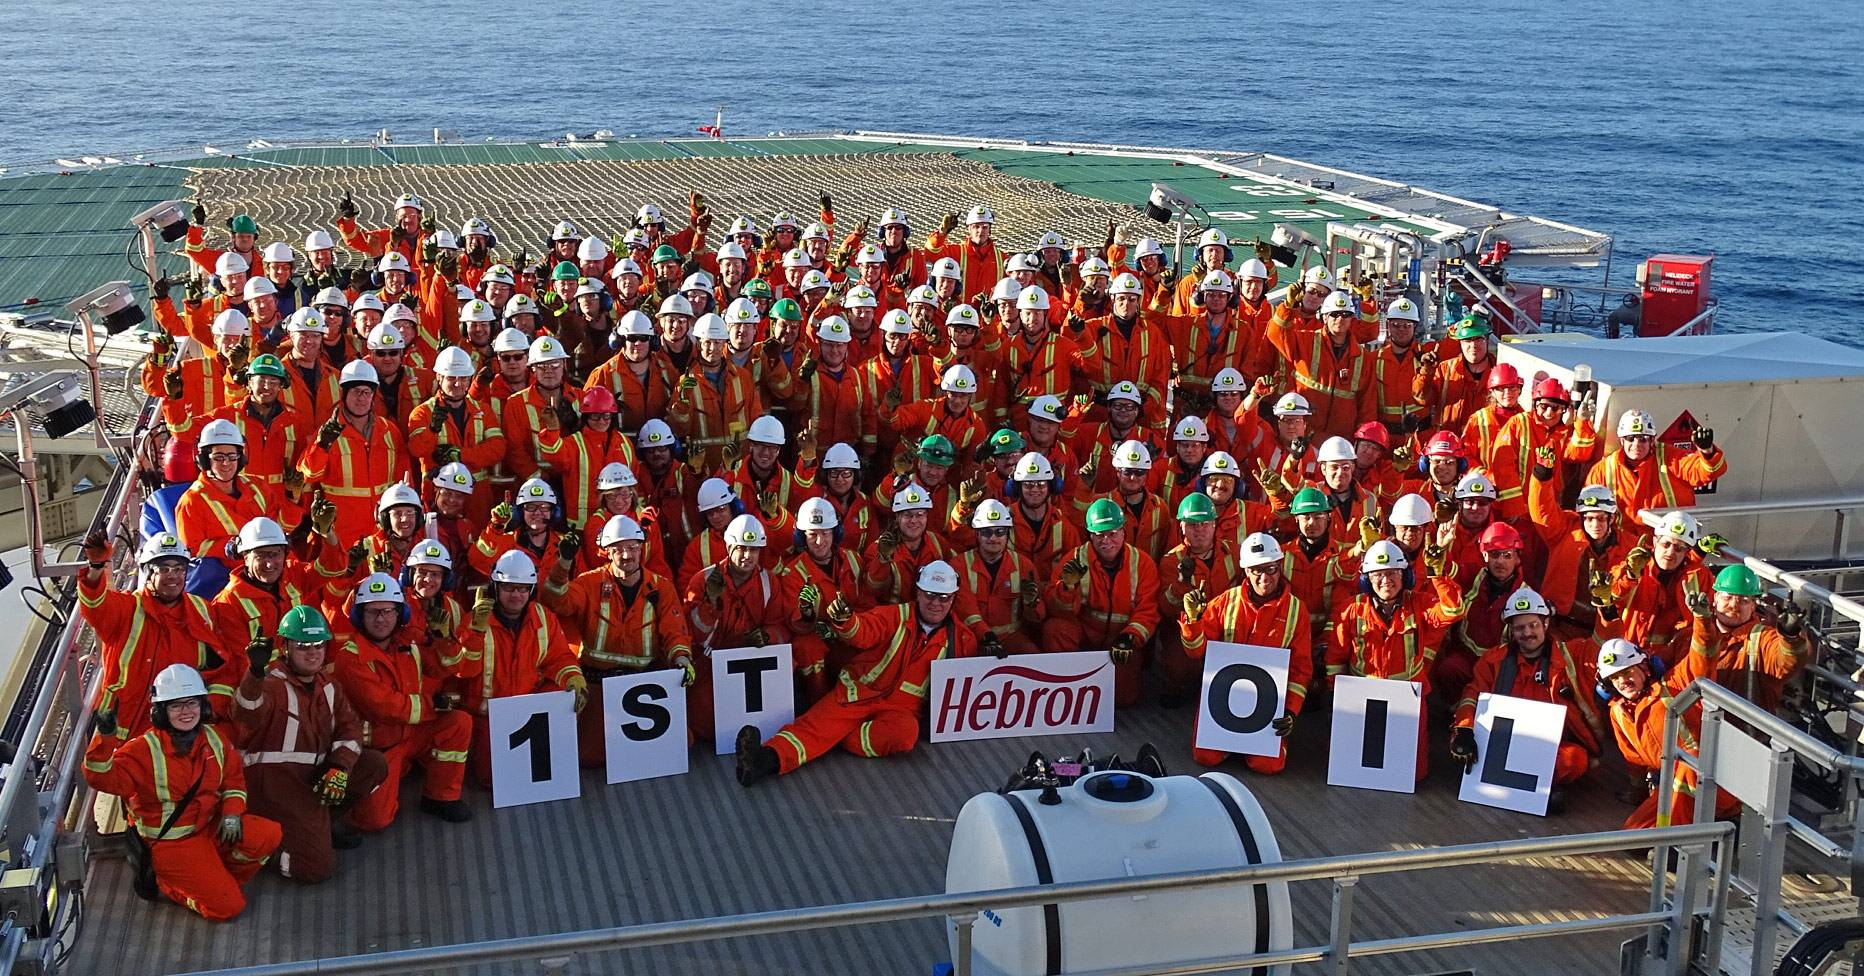 ExxonMobil's Hebron platform pumps first oil off Newfoundland and Labrador